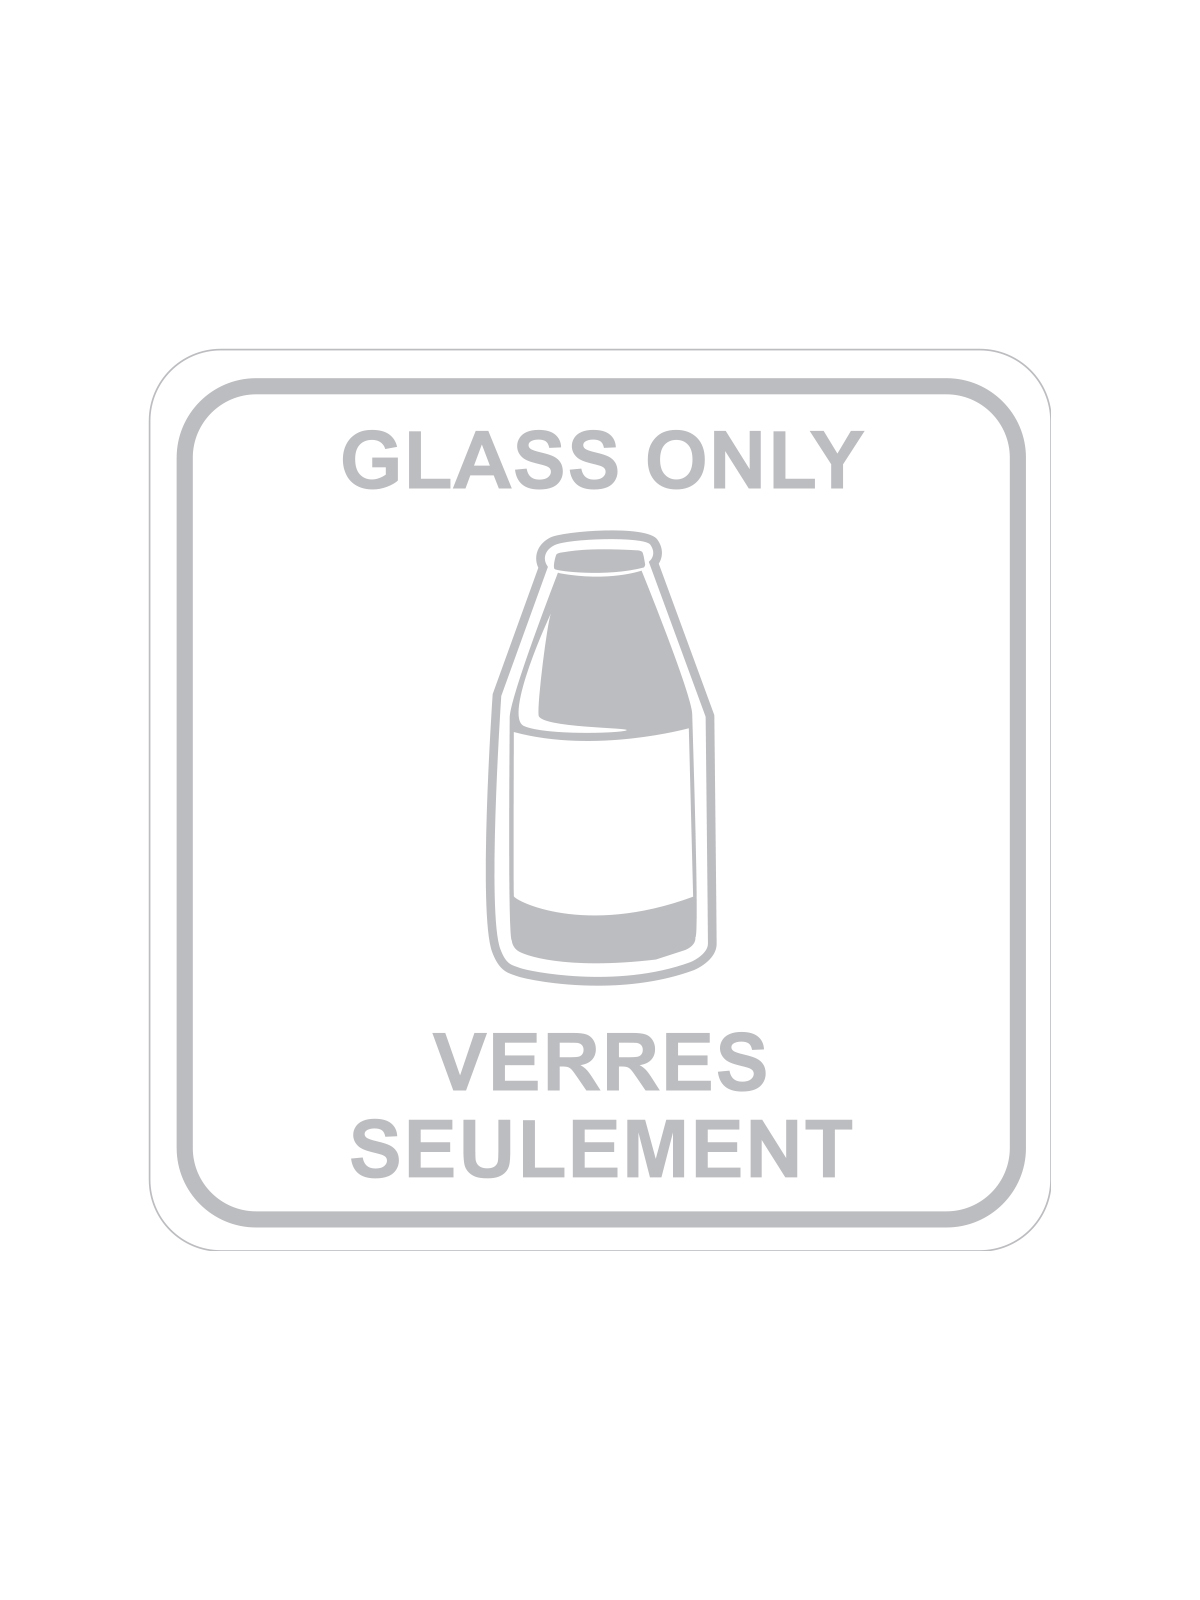 SQUARE LABEL GLASS ONLY - ENG/FRE